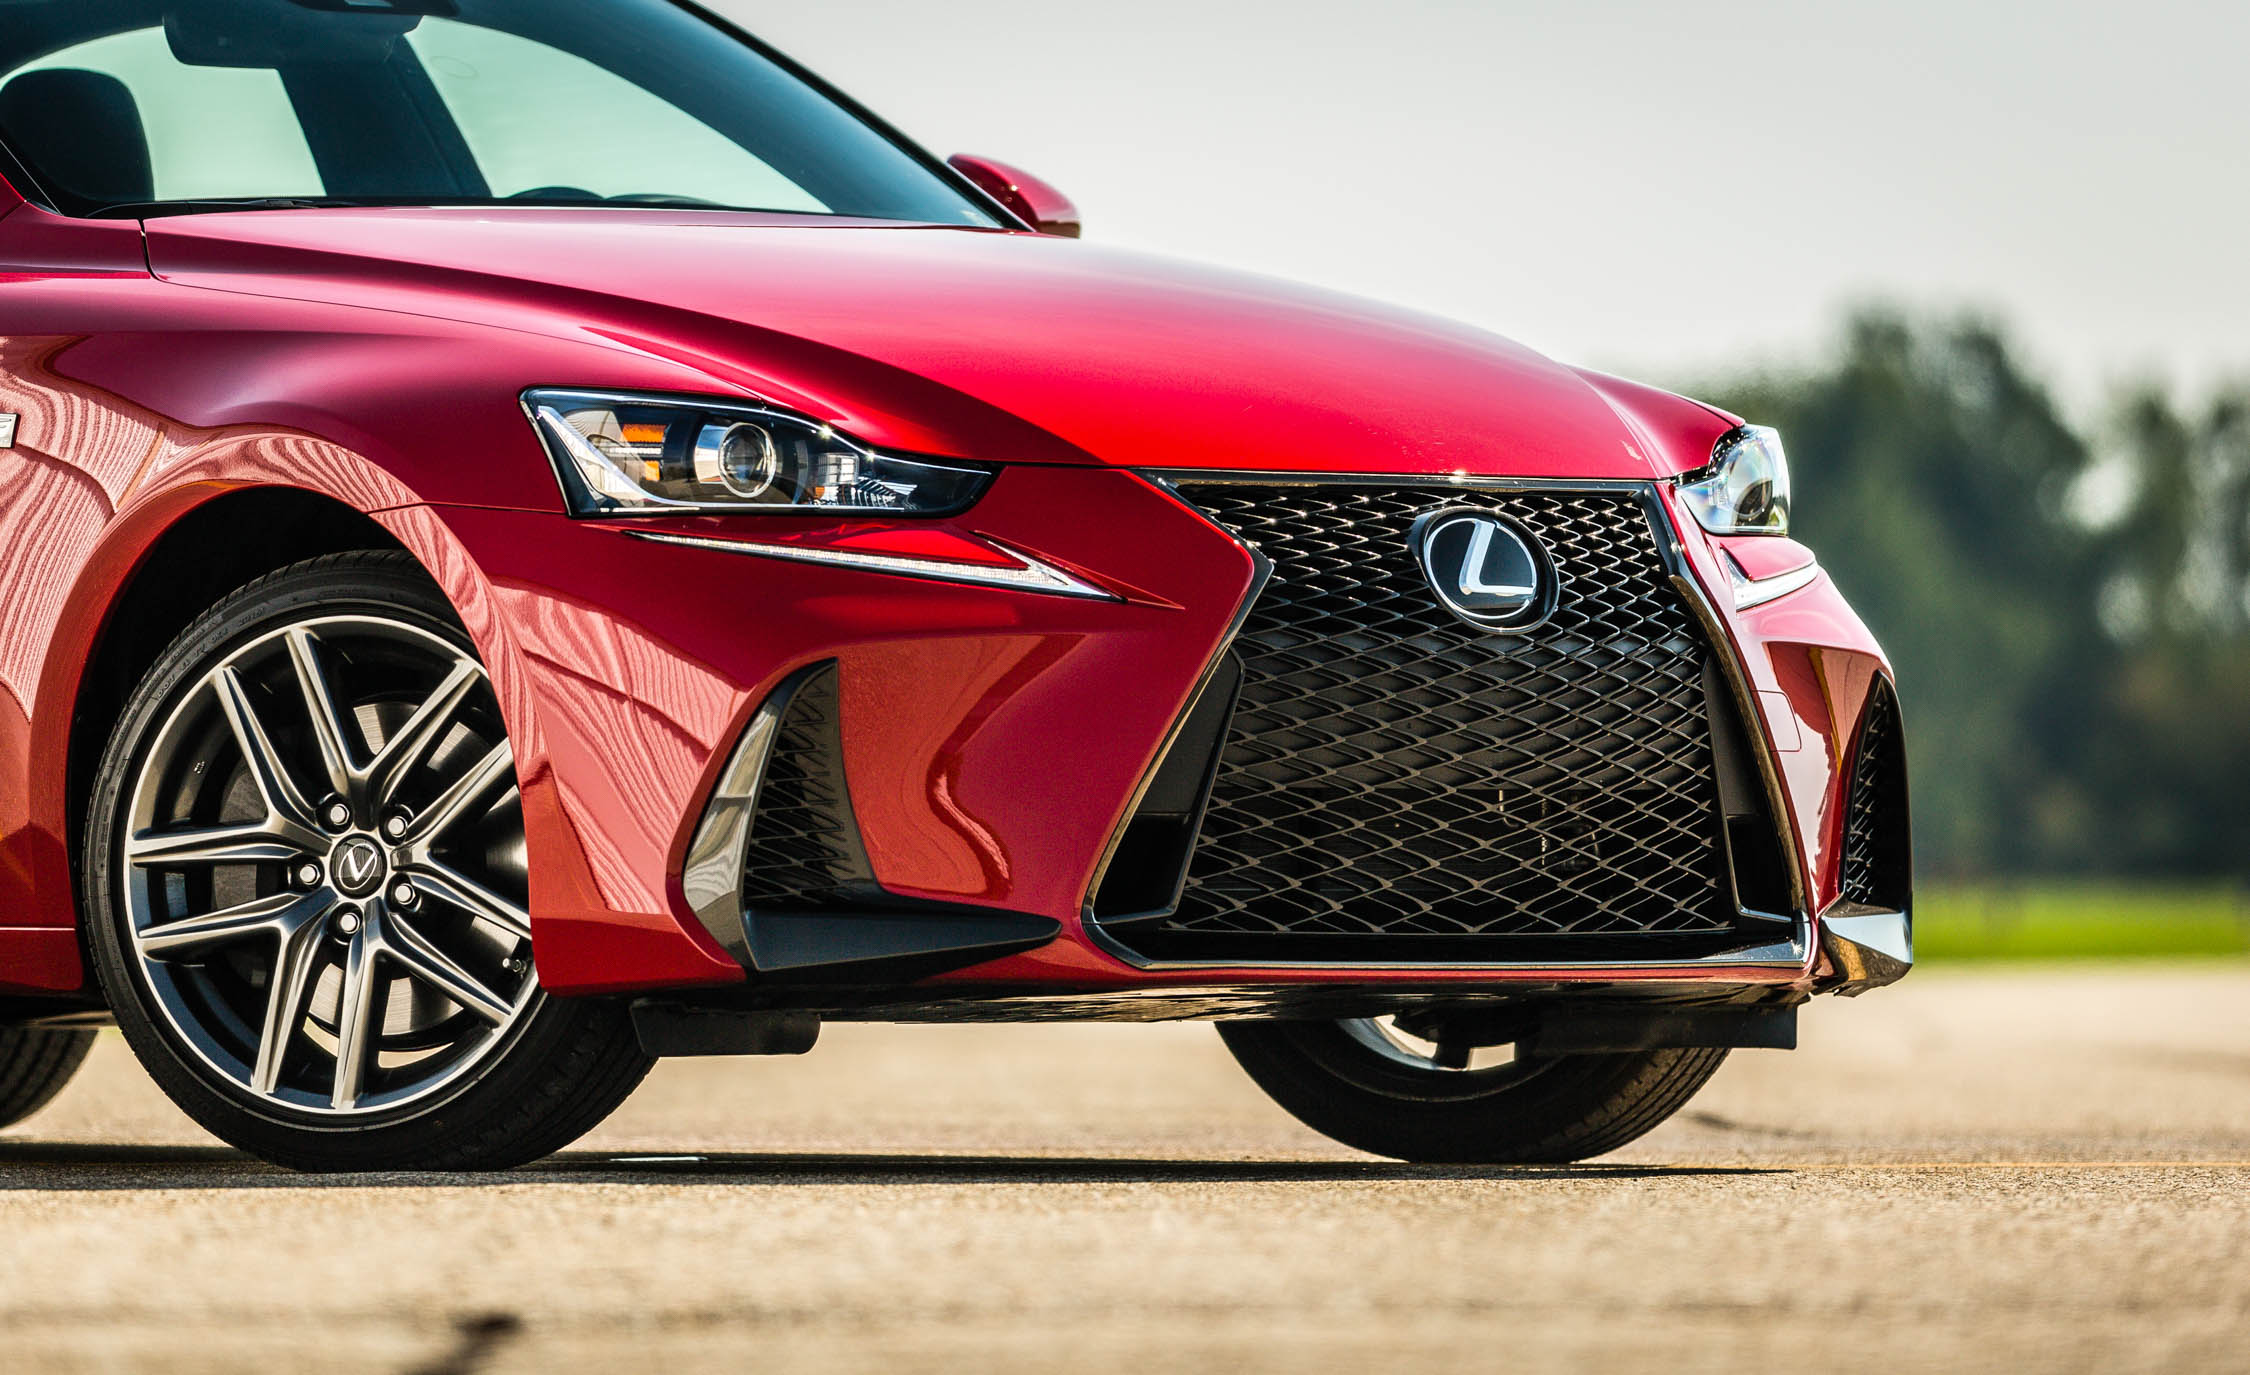 2017 Lexus IS 200t F Sport Red Exterior View Front Bumper And Grille (View 10 of 29)